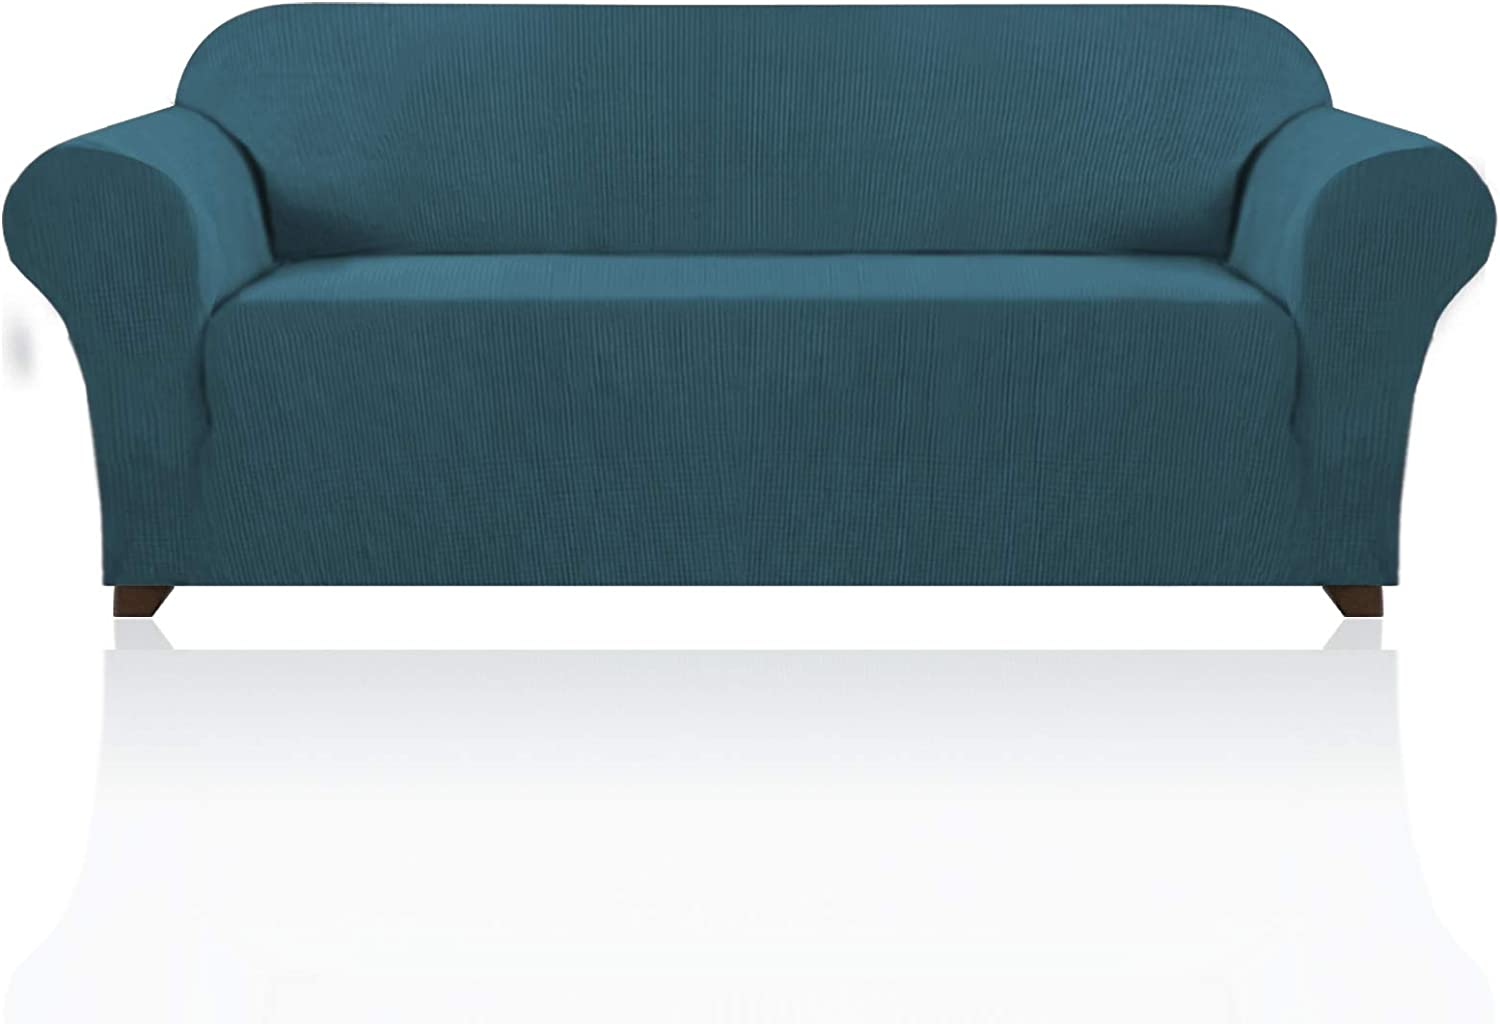 Stretch Sofa Slipcover 1 Piece Sofa Cover for 3 Cushion Couch Furniture Protector/Cover Couch with Elastic Bottom Soft and Durable Sofa Cover Pet Protector (Sofa, Deep Teal)